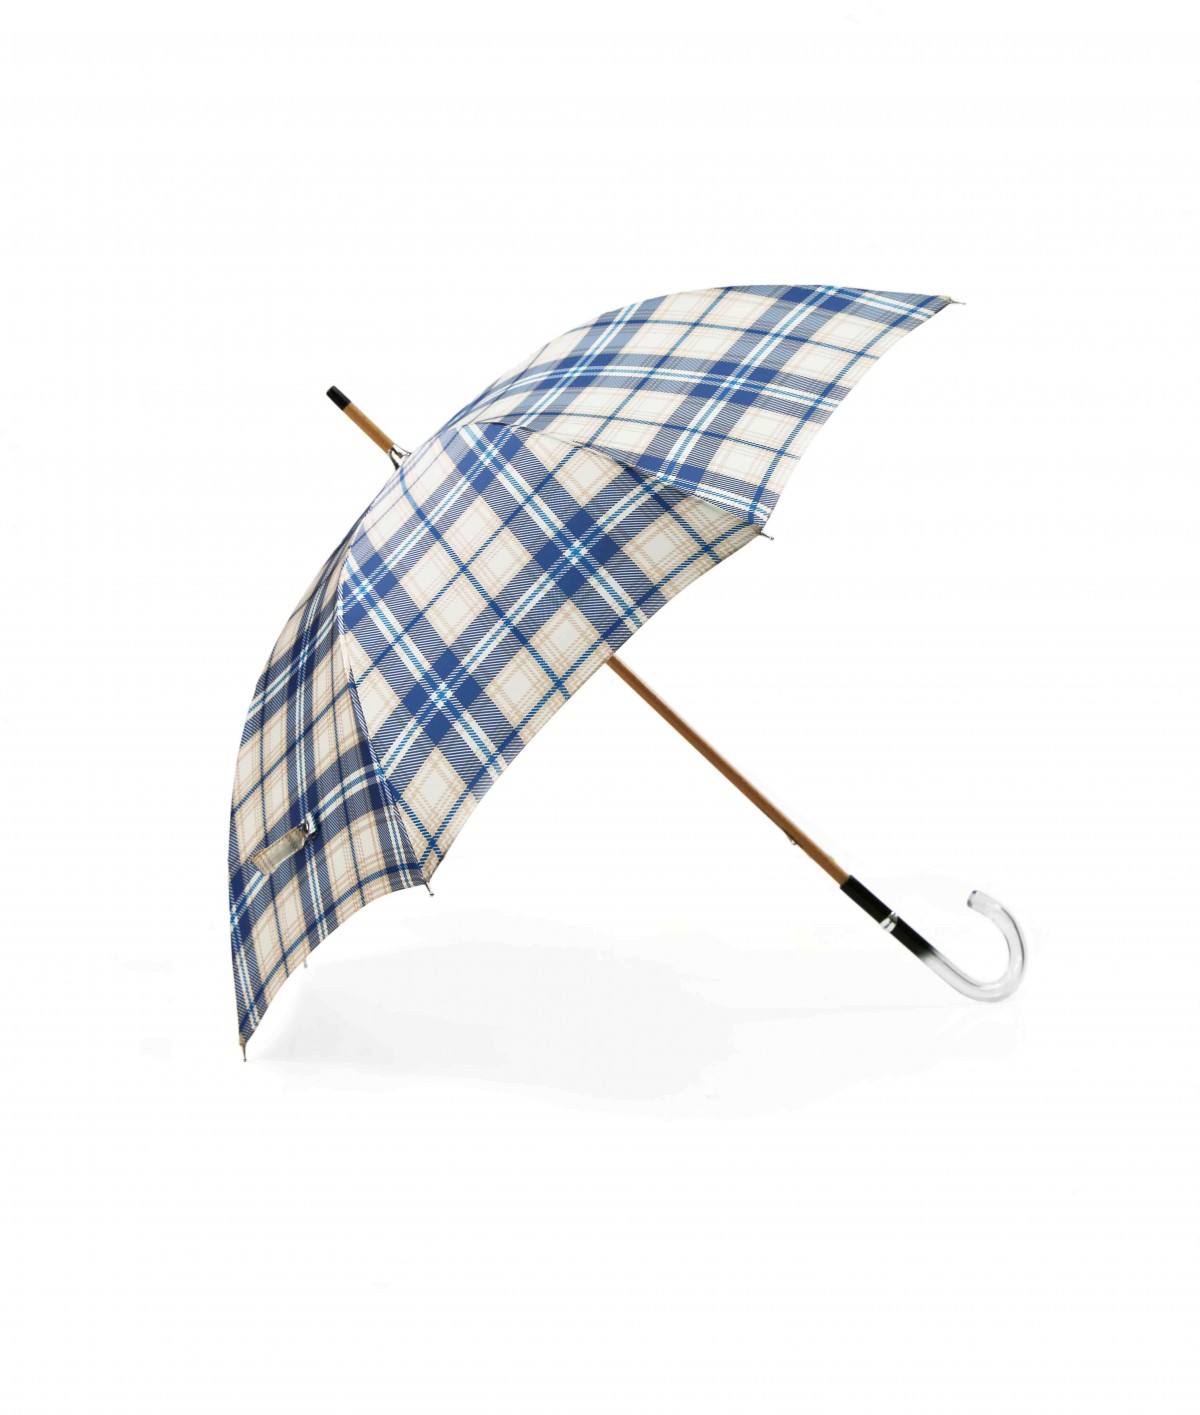 → Fancy Printed Satin Umbrella - Long Manual N°9 - Made in France by Maison Pierre Vaux French Umbrella Manufacturer